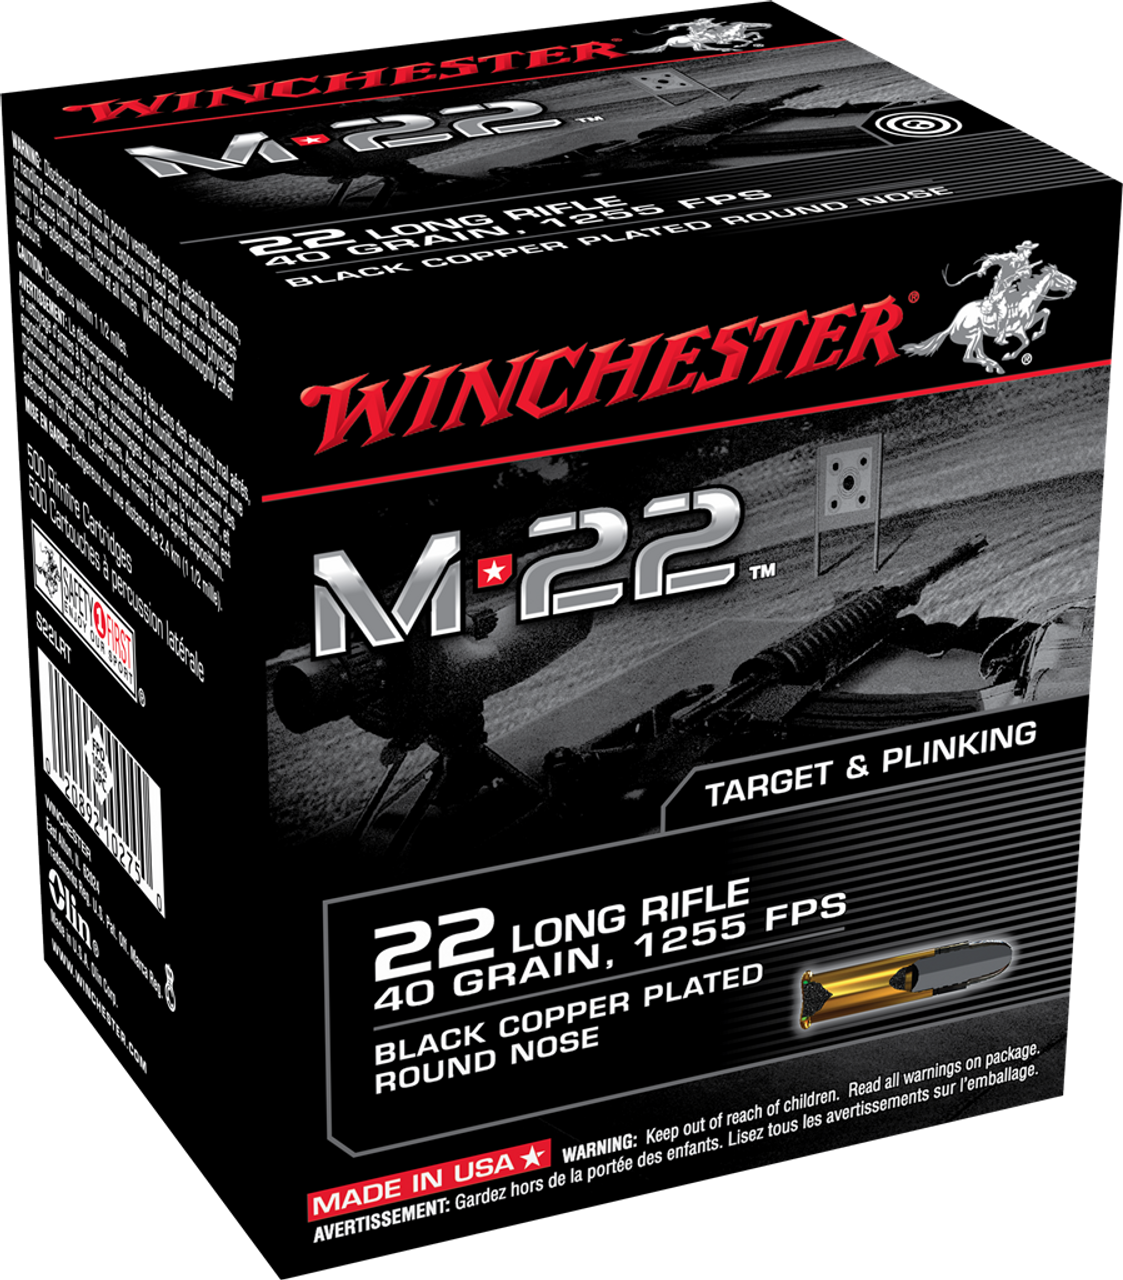 Facebook Ammunition Special - Winchester M22 - 22LR - 5 pounds